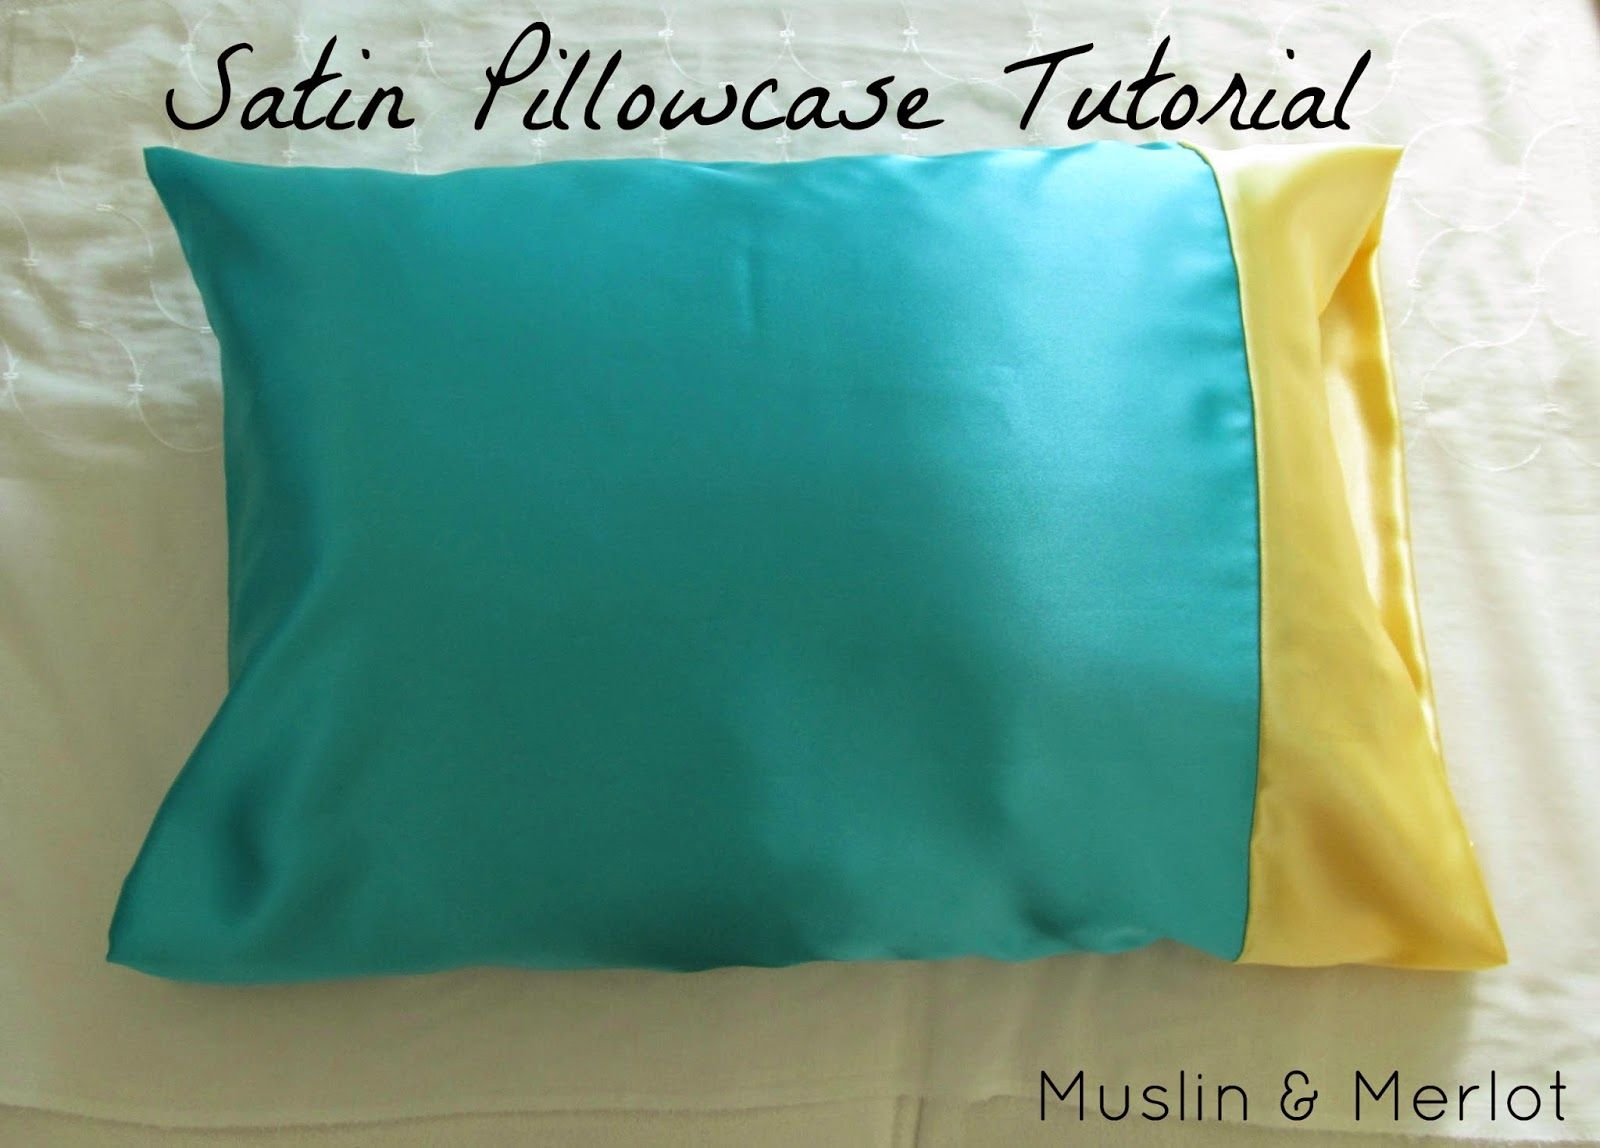 Satin Pillowcase For Curly Hair Satin Pillowcase Tutorial  Satin Pillowcase Tutorials And Sewing